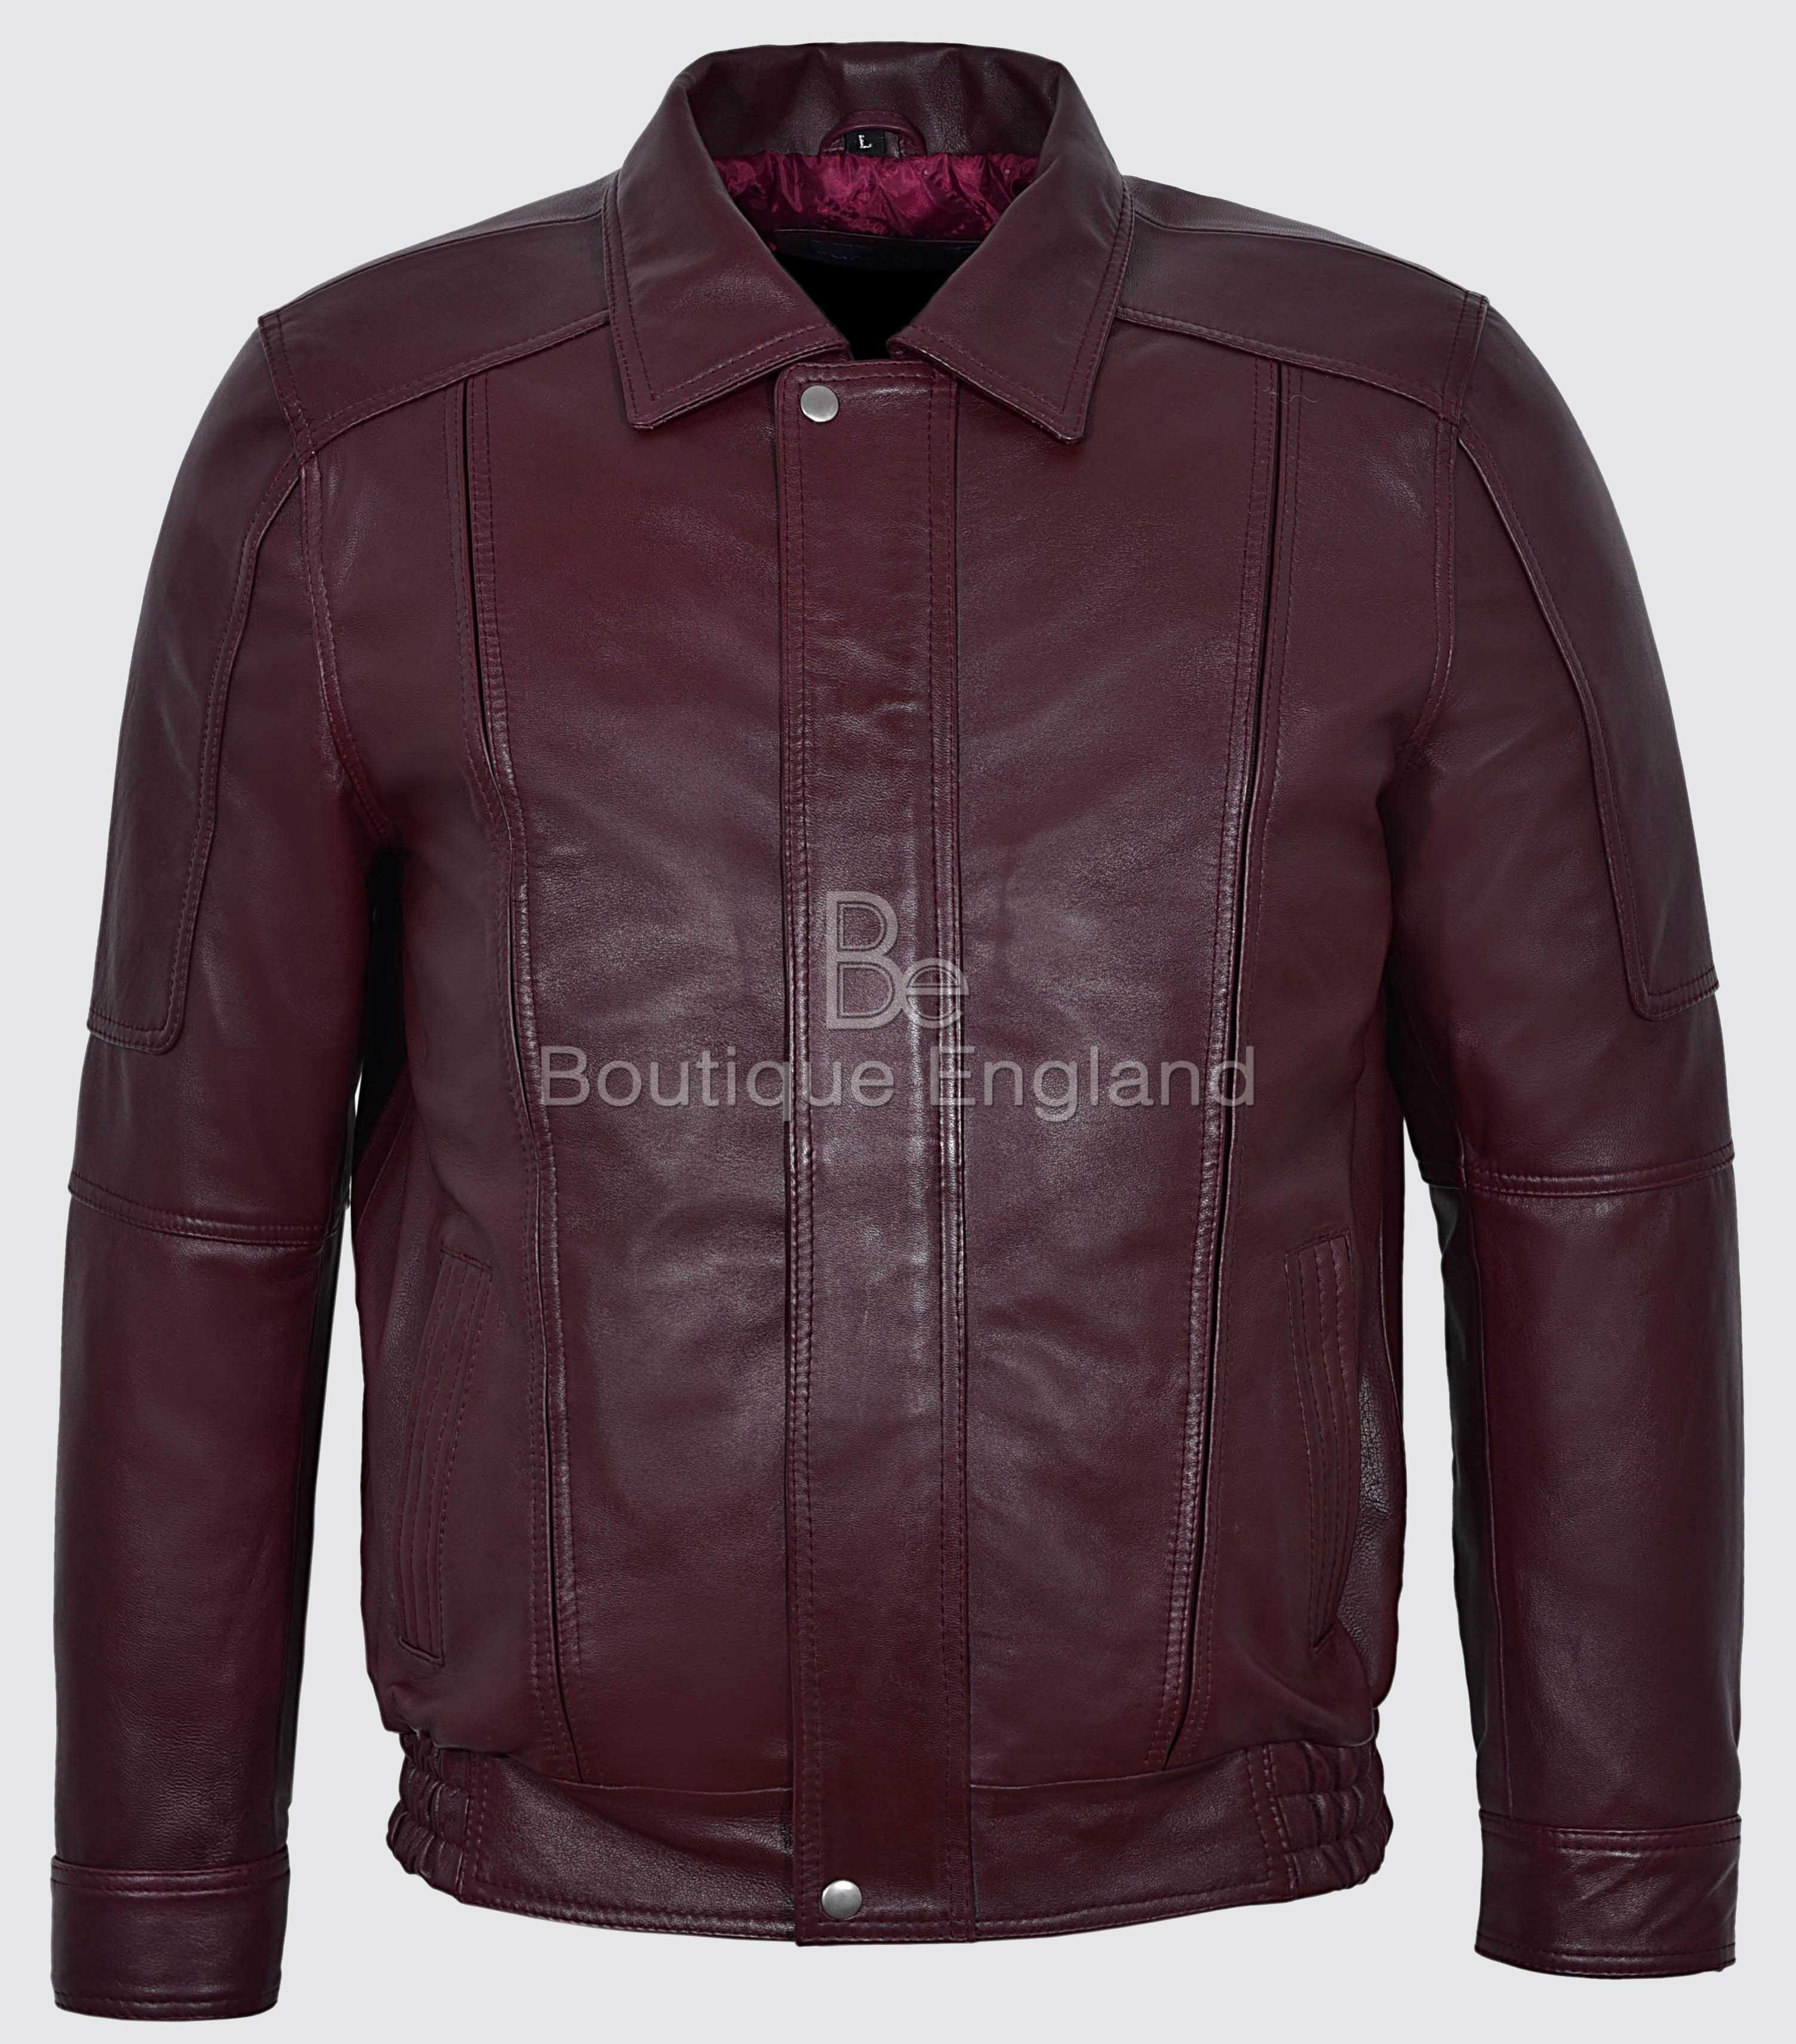 9333fa3c8 Joshua New Mans Cherry Red Blouson Real Soft Napa Leather Bomber Jacket 6011